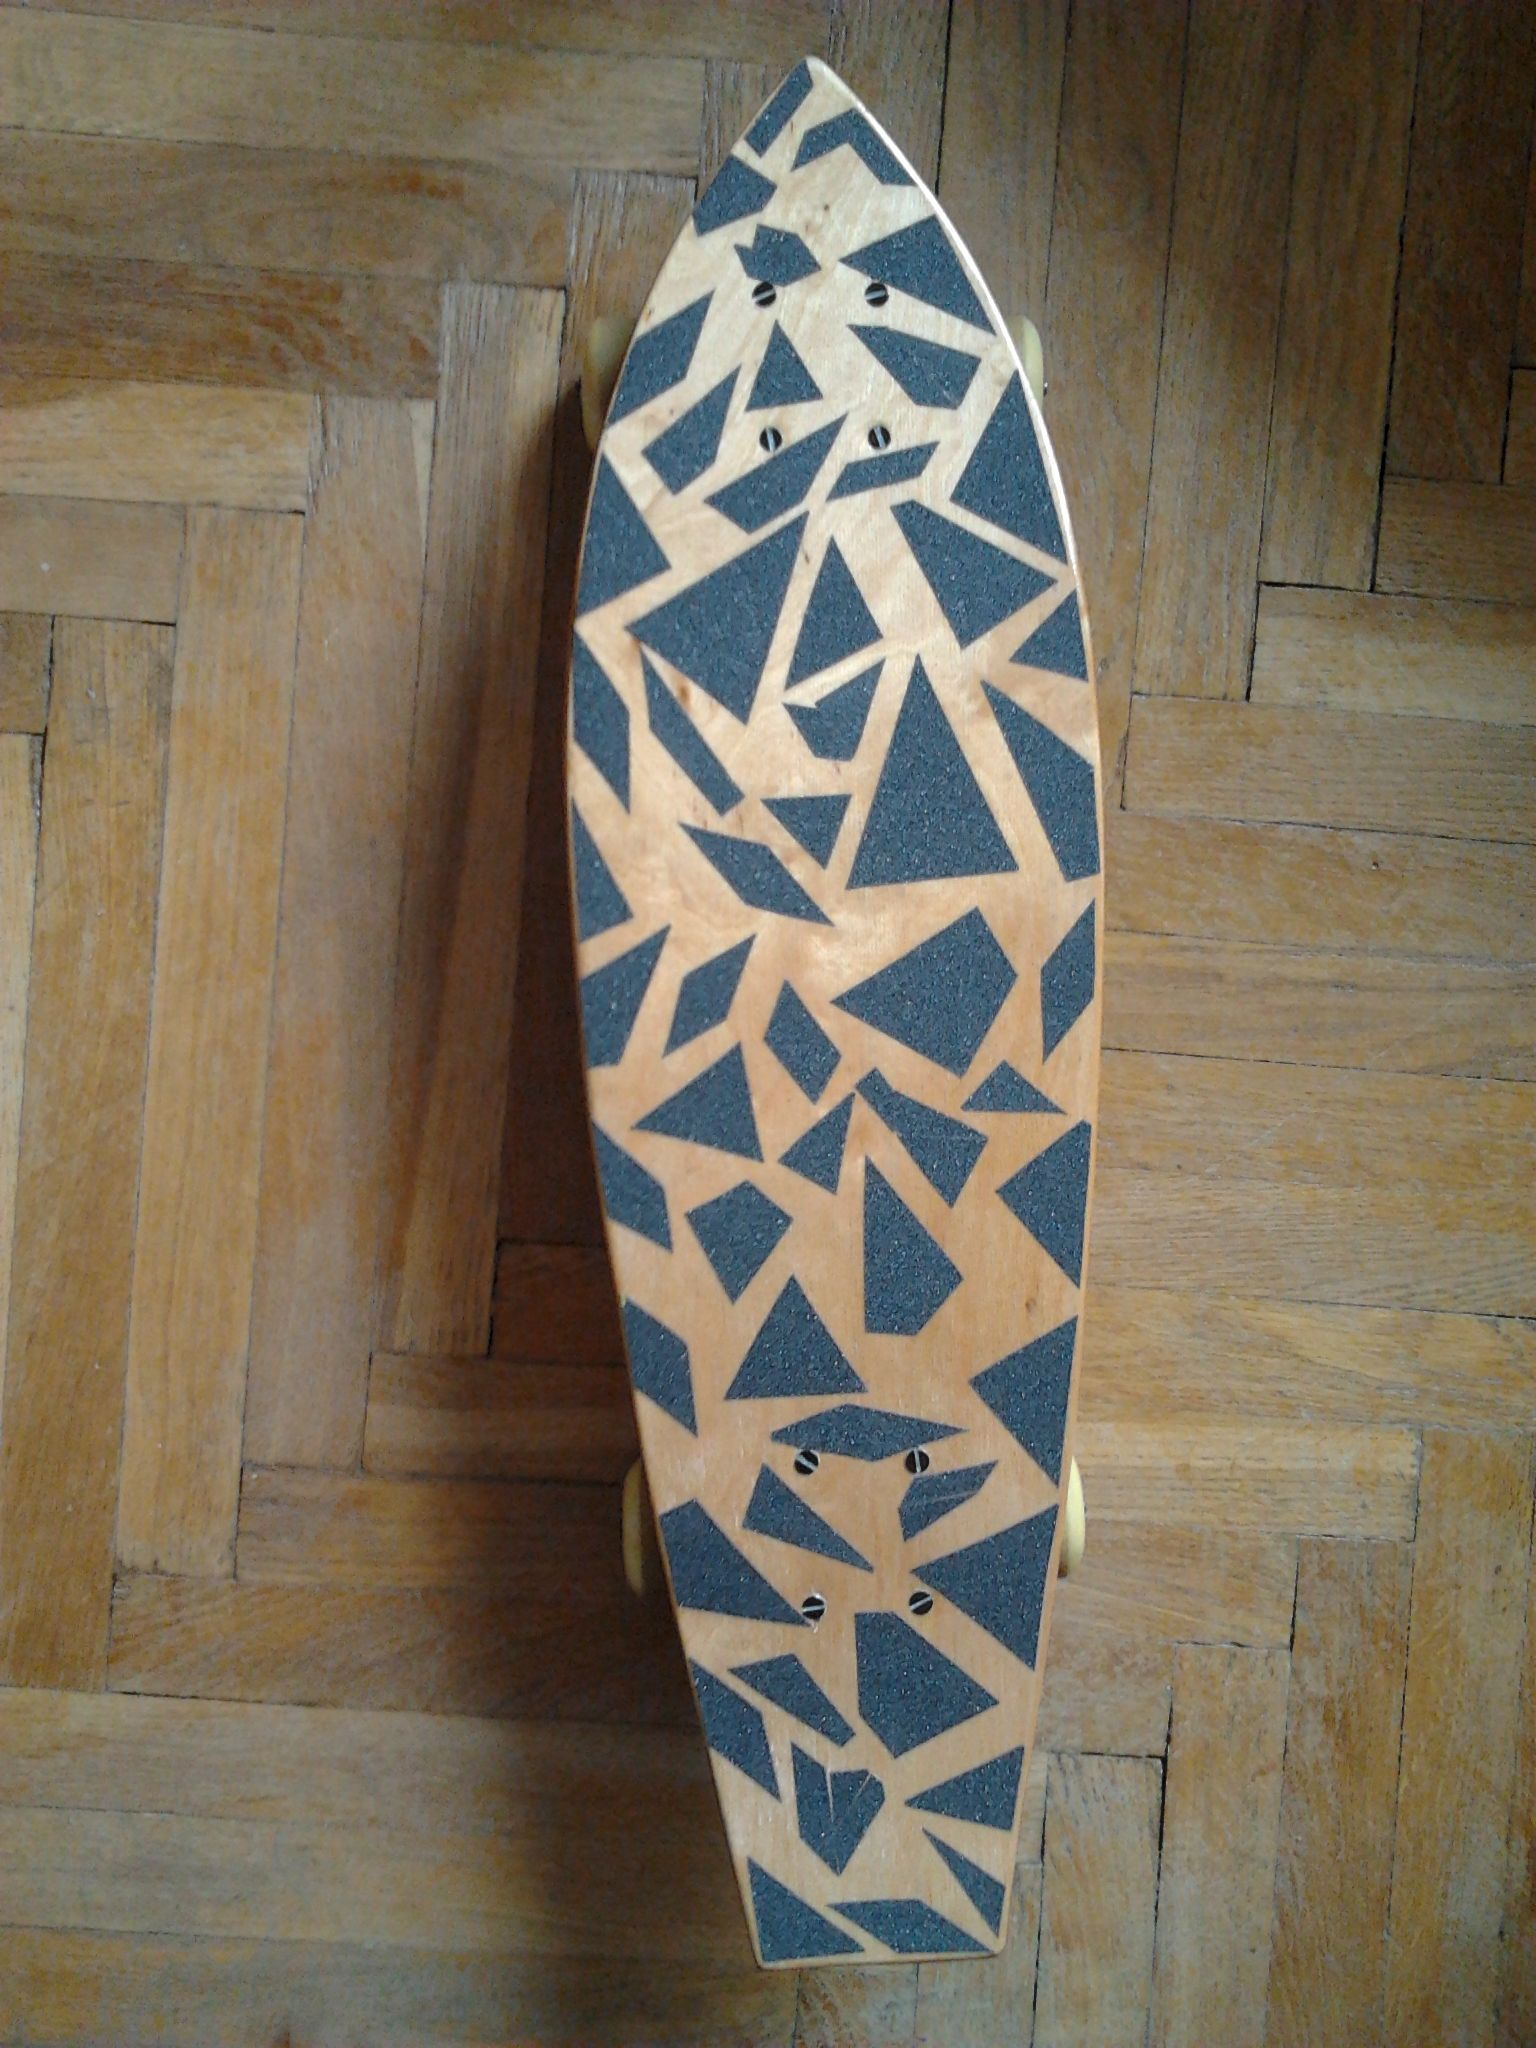 Skateboarding, griptape, art, diy, wood